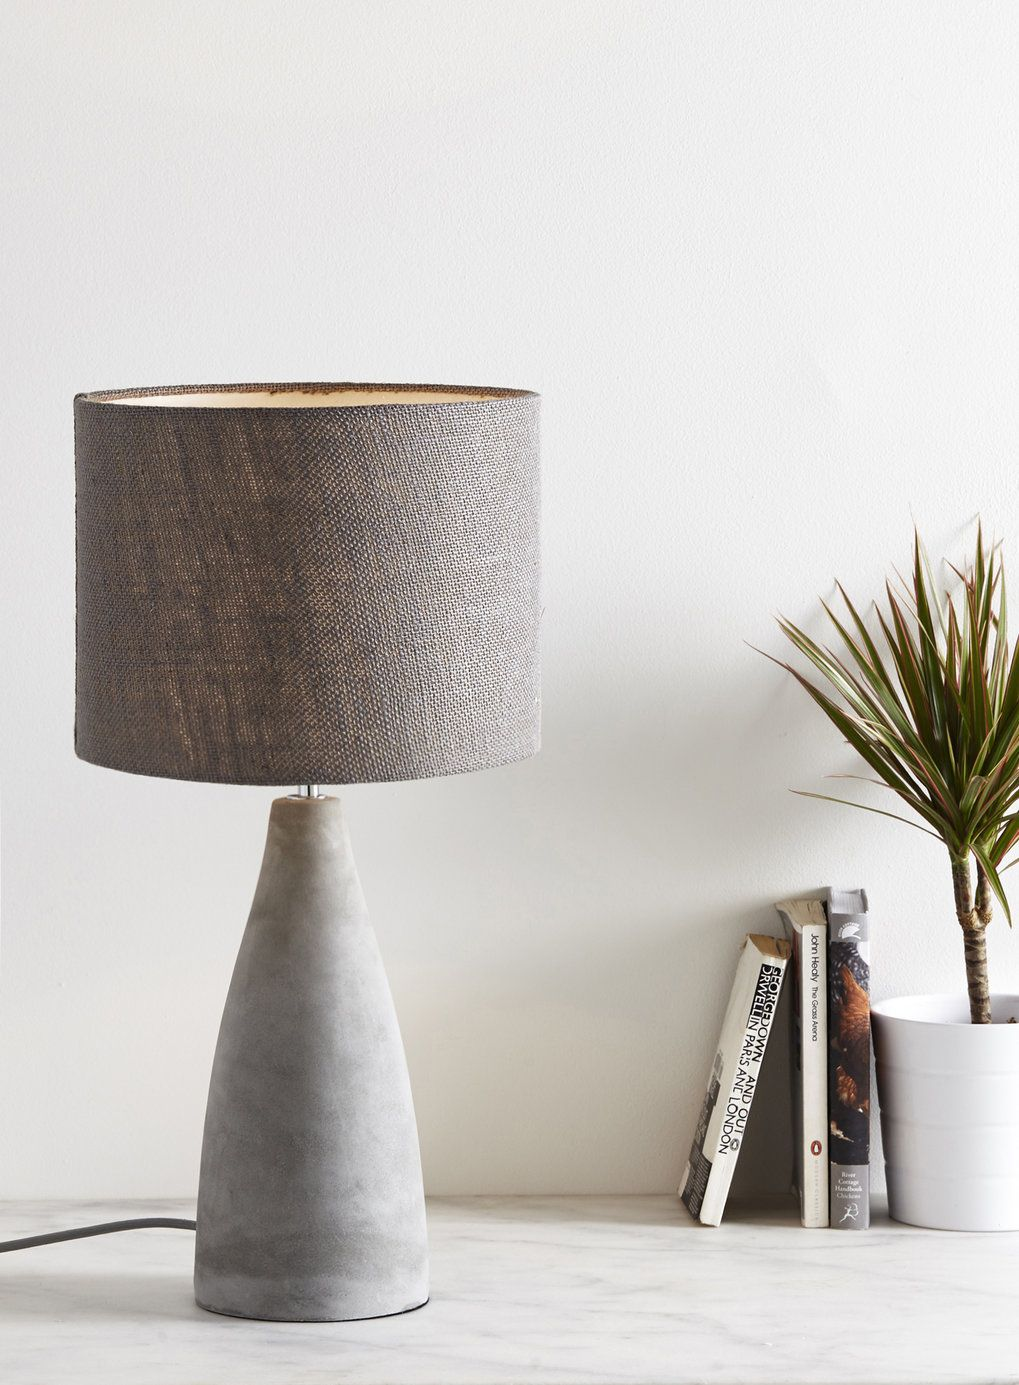 Fraser grey table lamp bhs table sized lamps pinterest fraser grey table lamp table lamps home lighting furniture bhs geotapseo Gallery